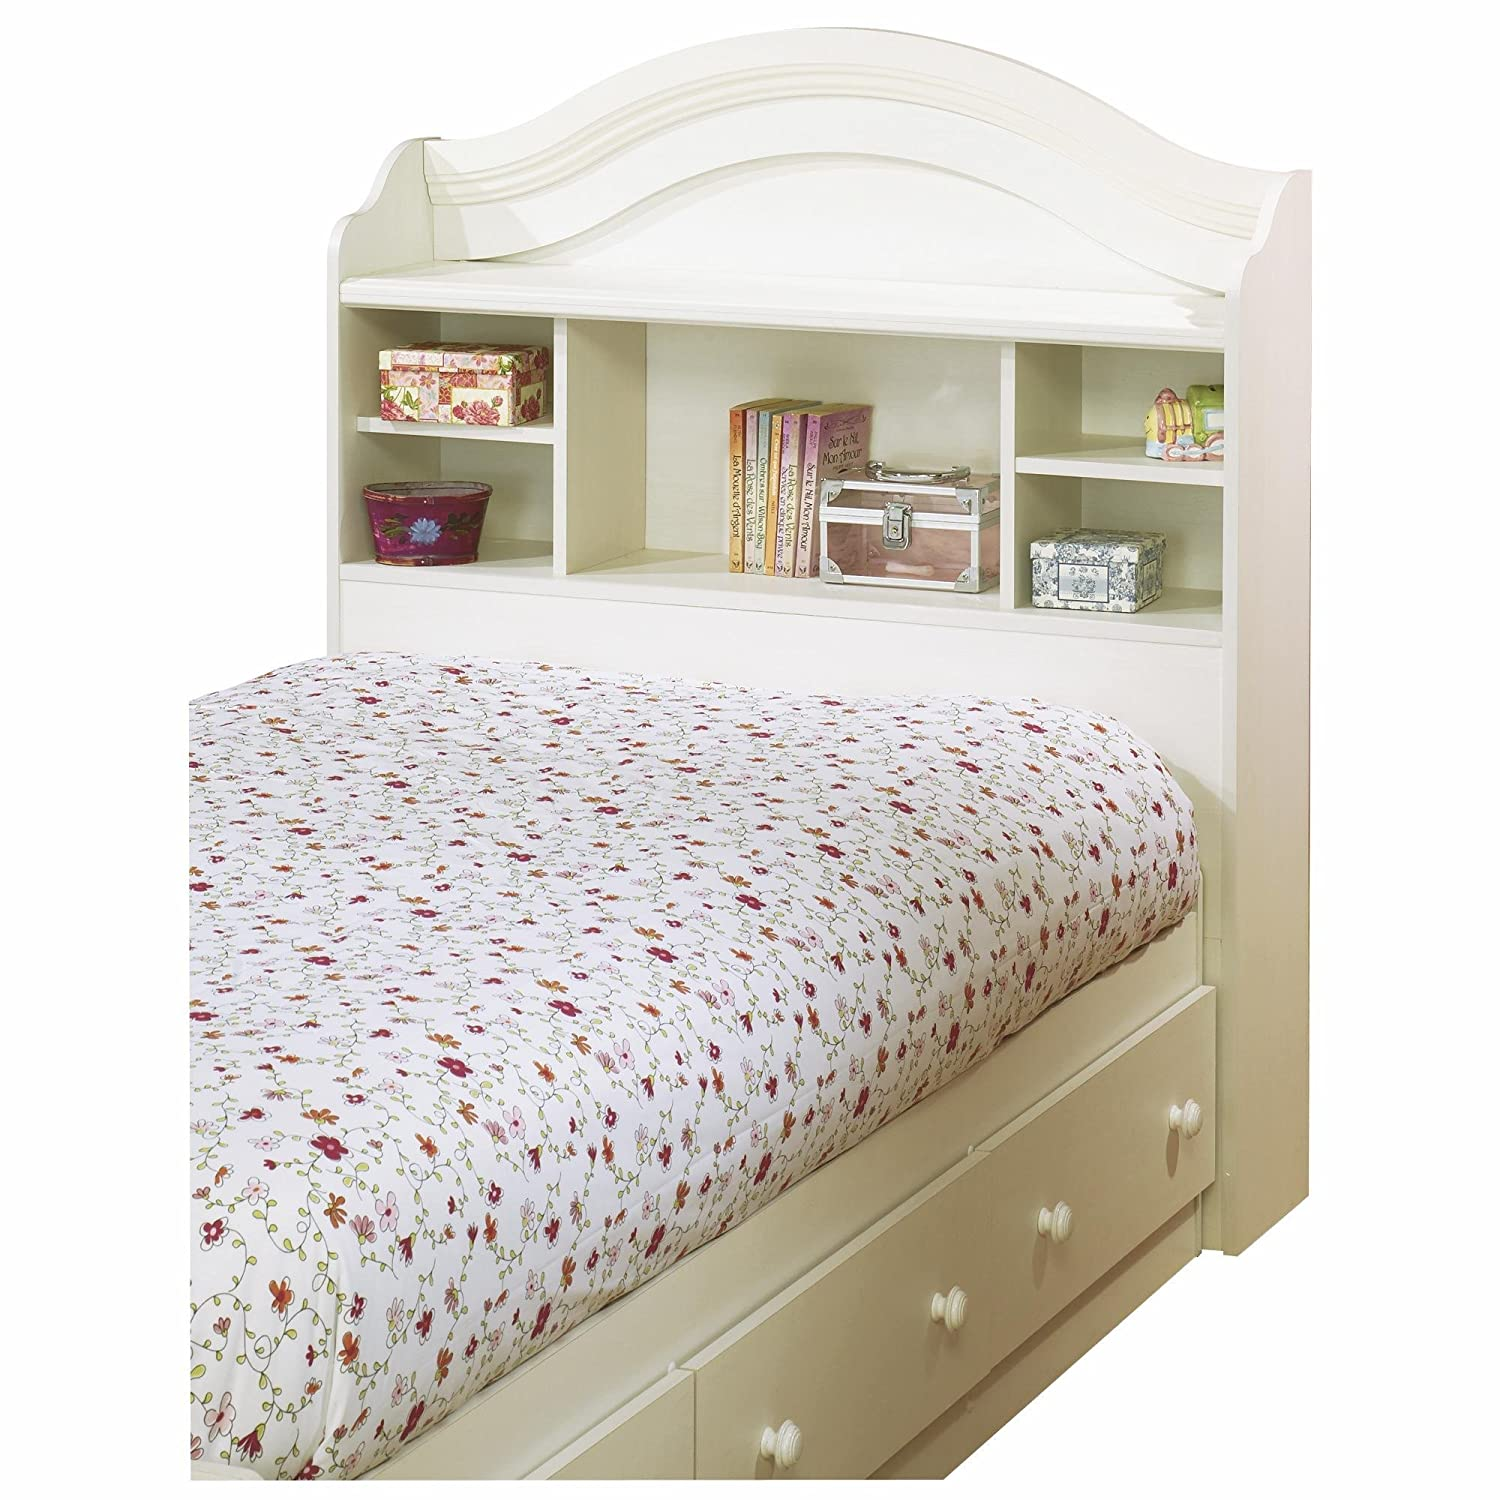 Amazon South Shore Summer Breeze Twin Bookcase Headboard and